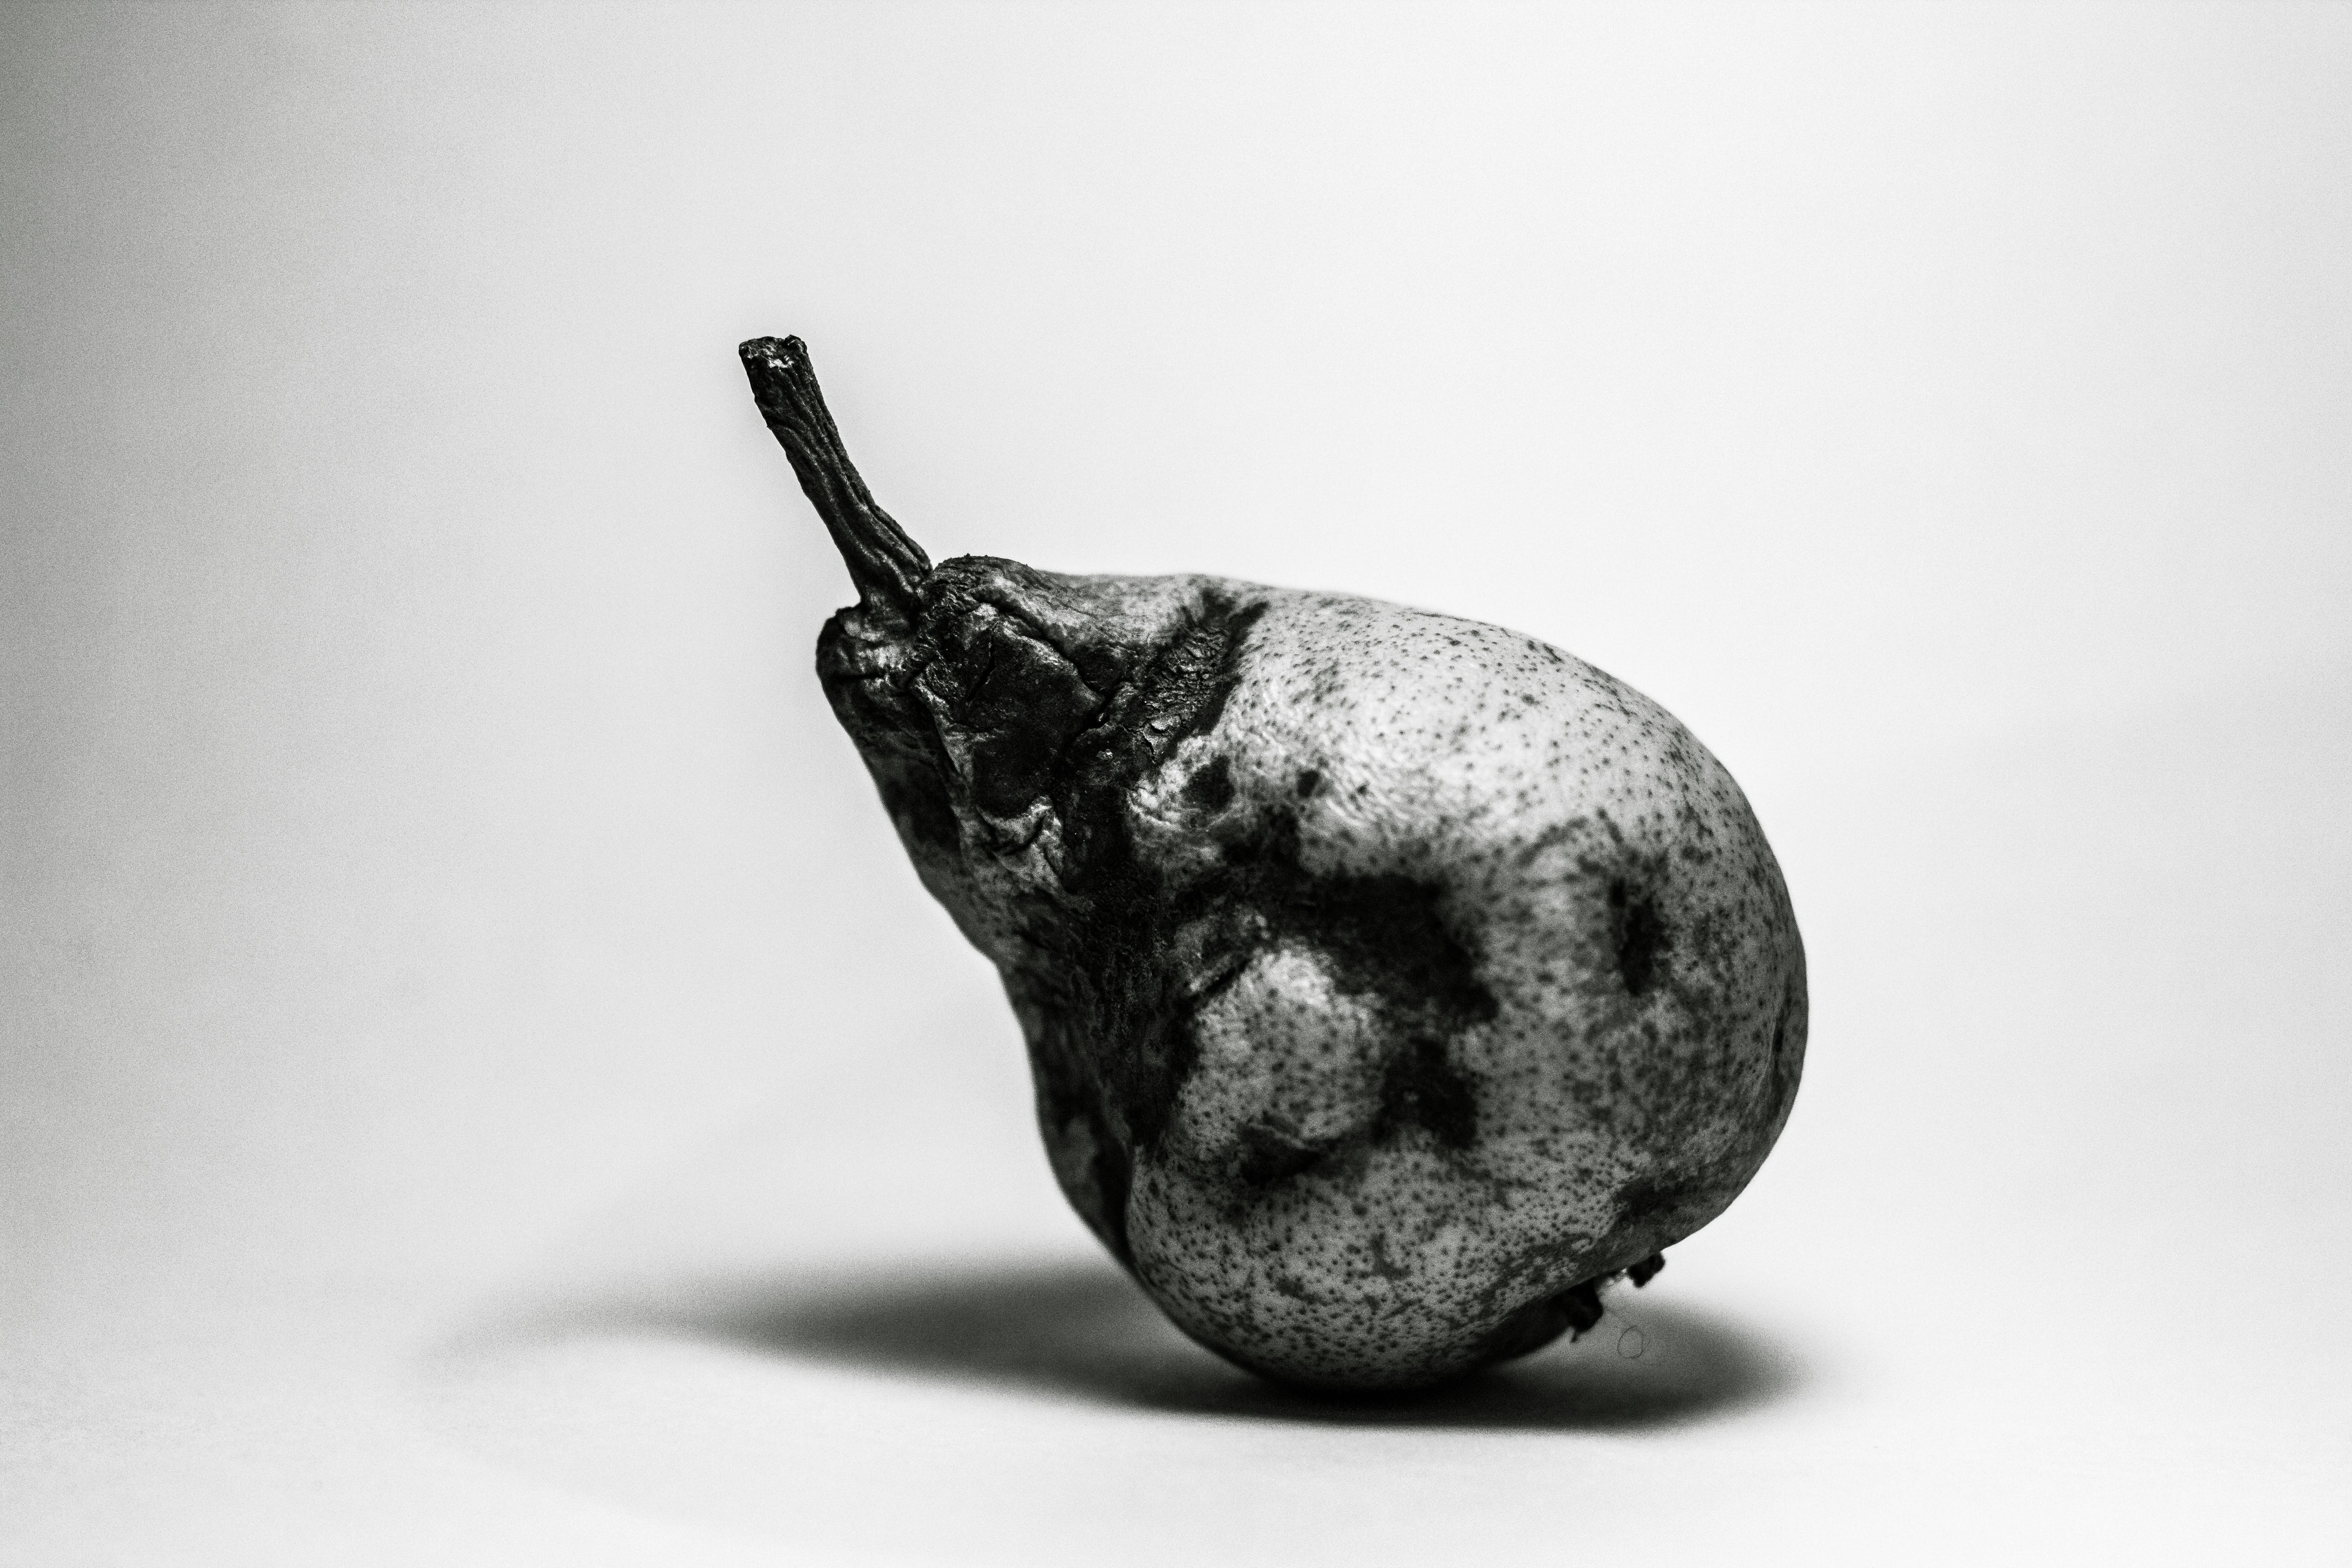 Free stock photo of old, contrast, fruit, still life